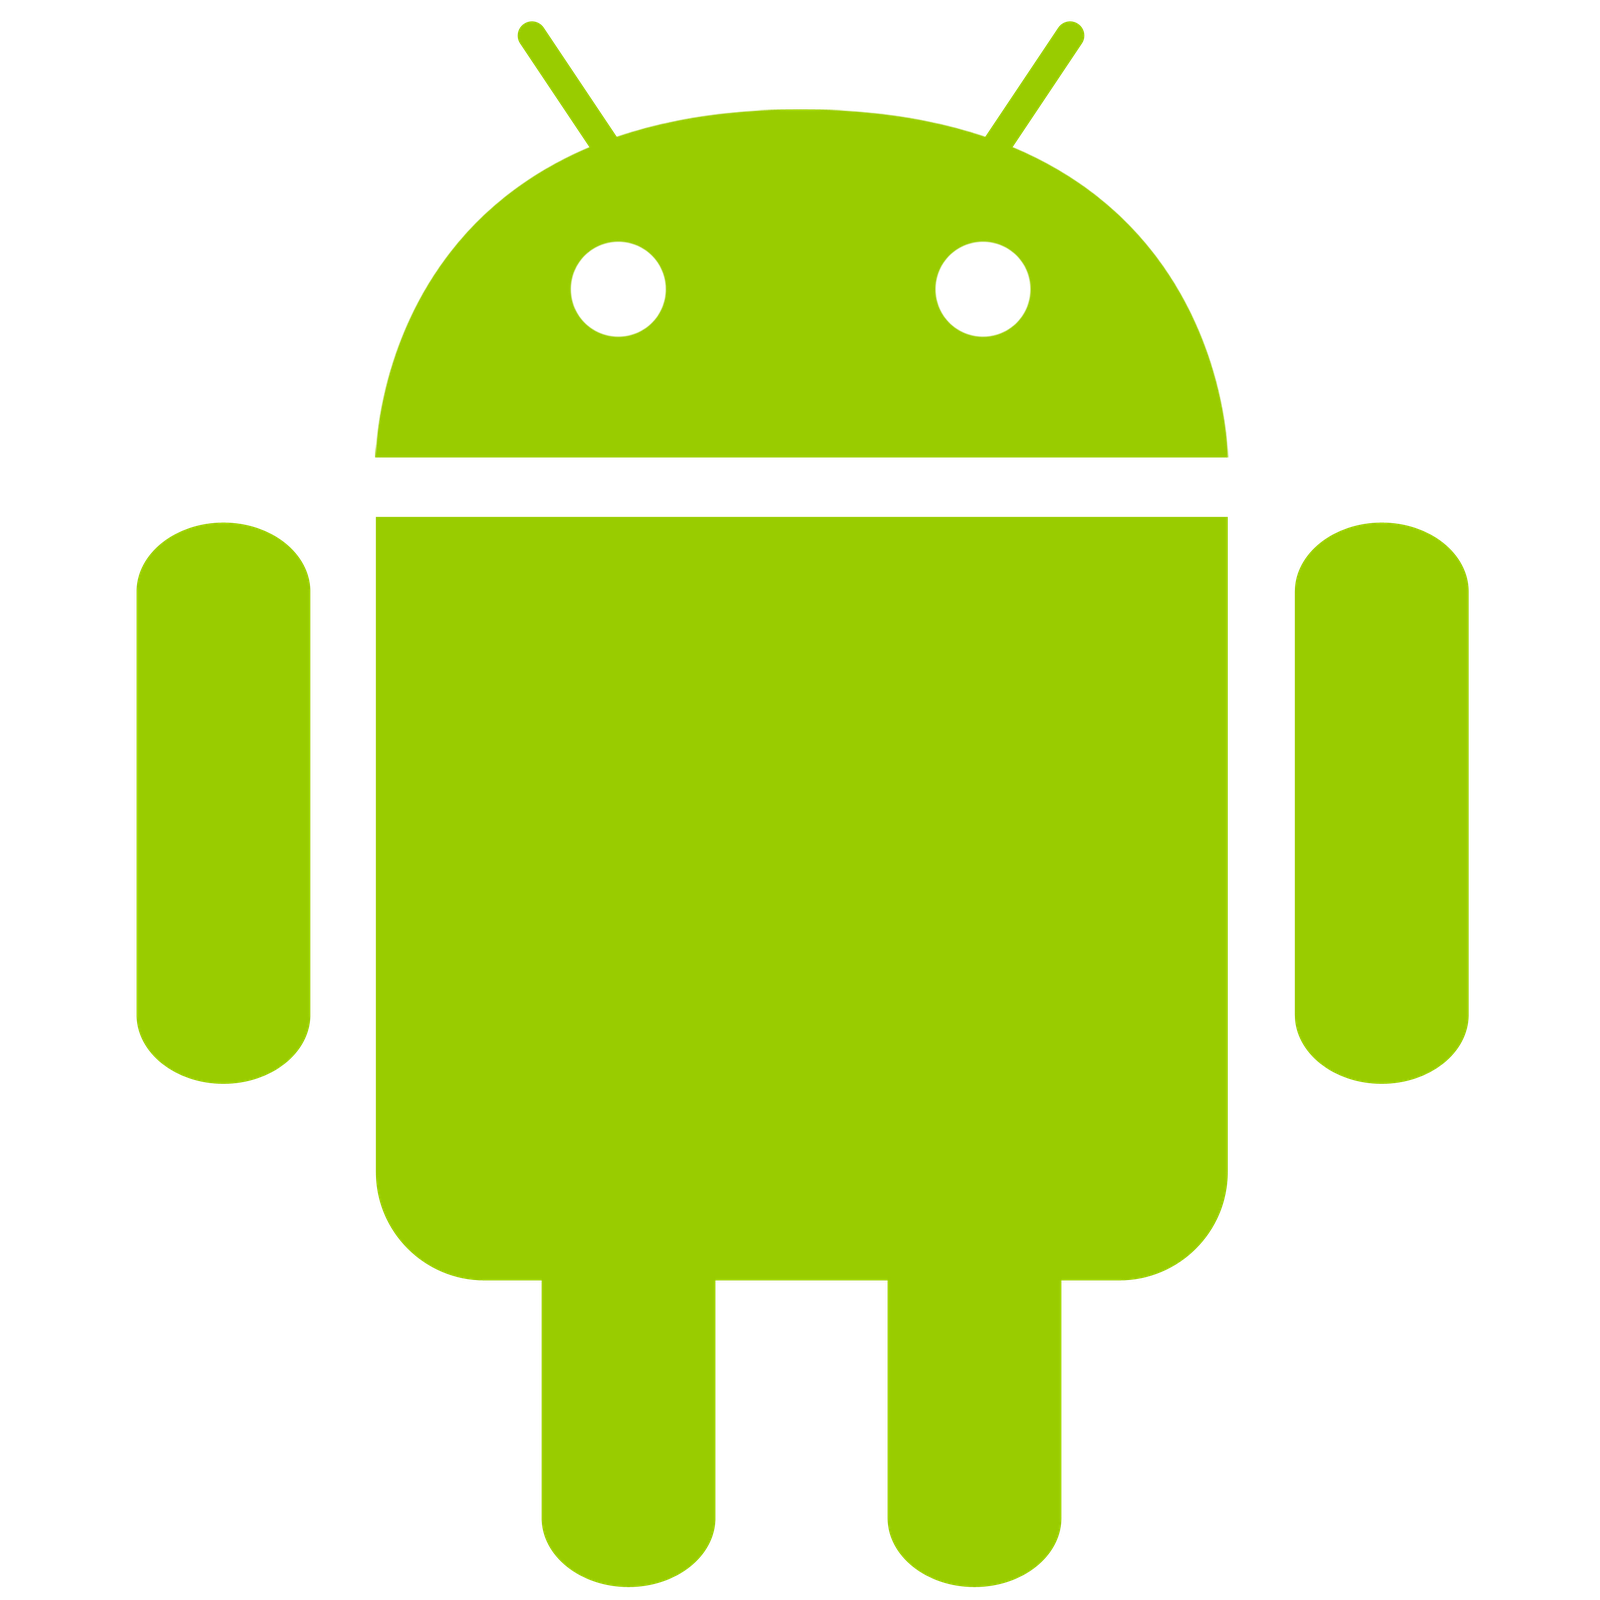 Google android phones - f1414